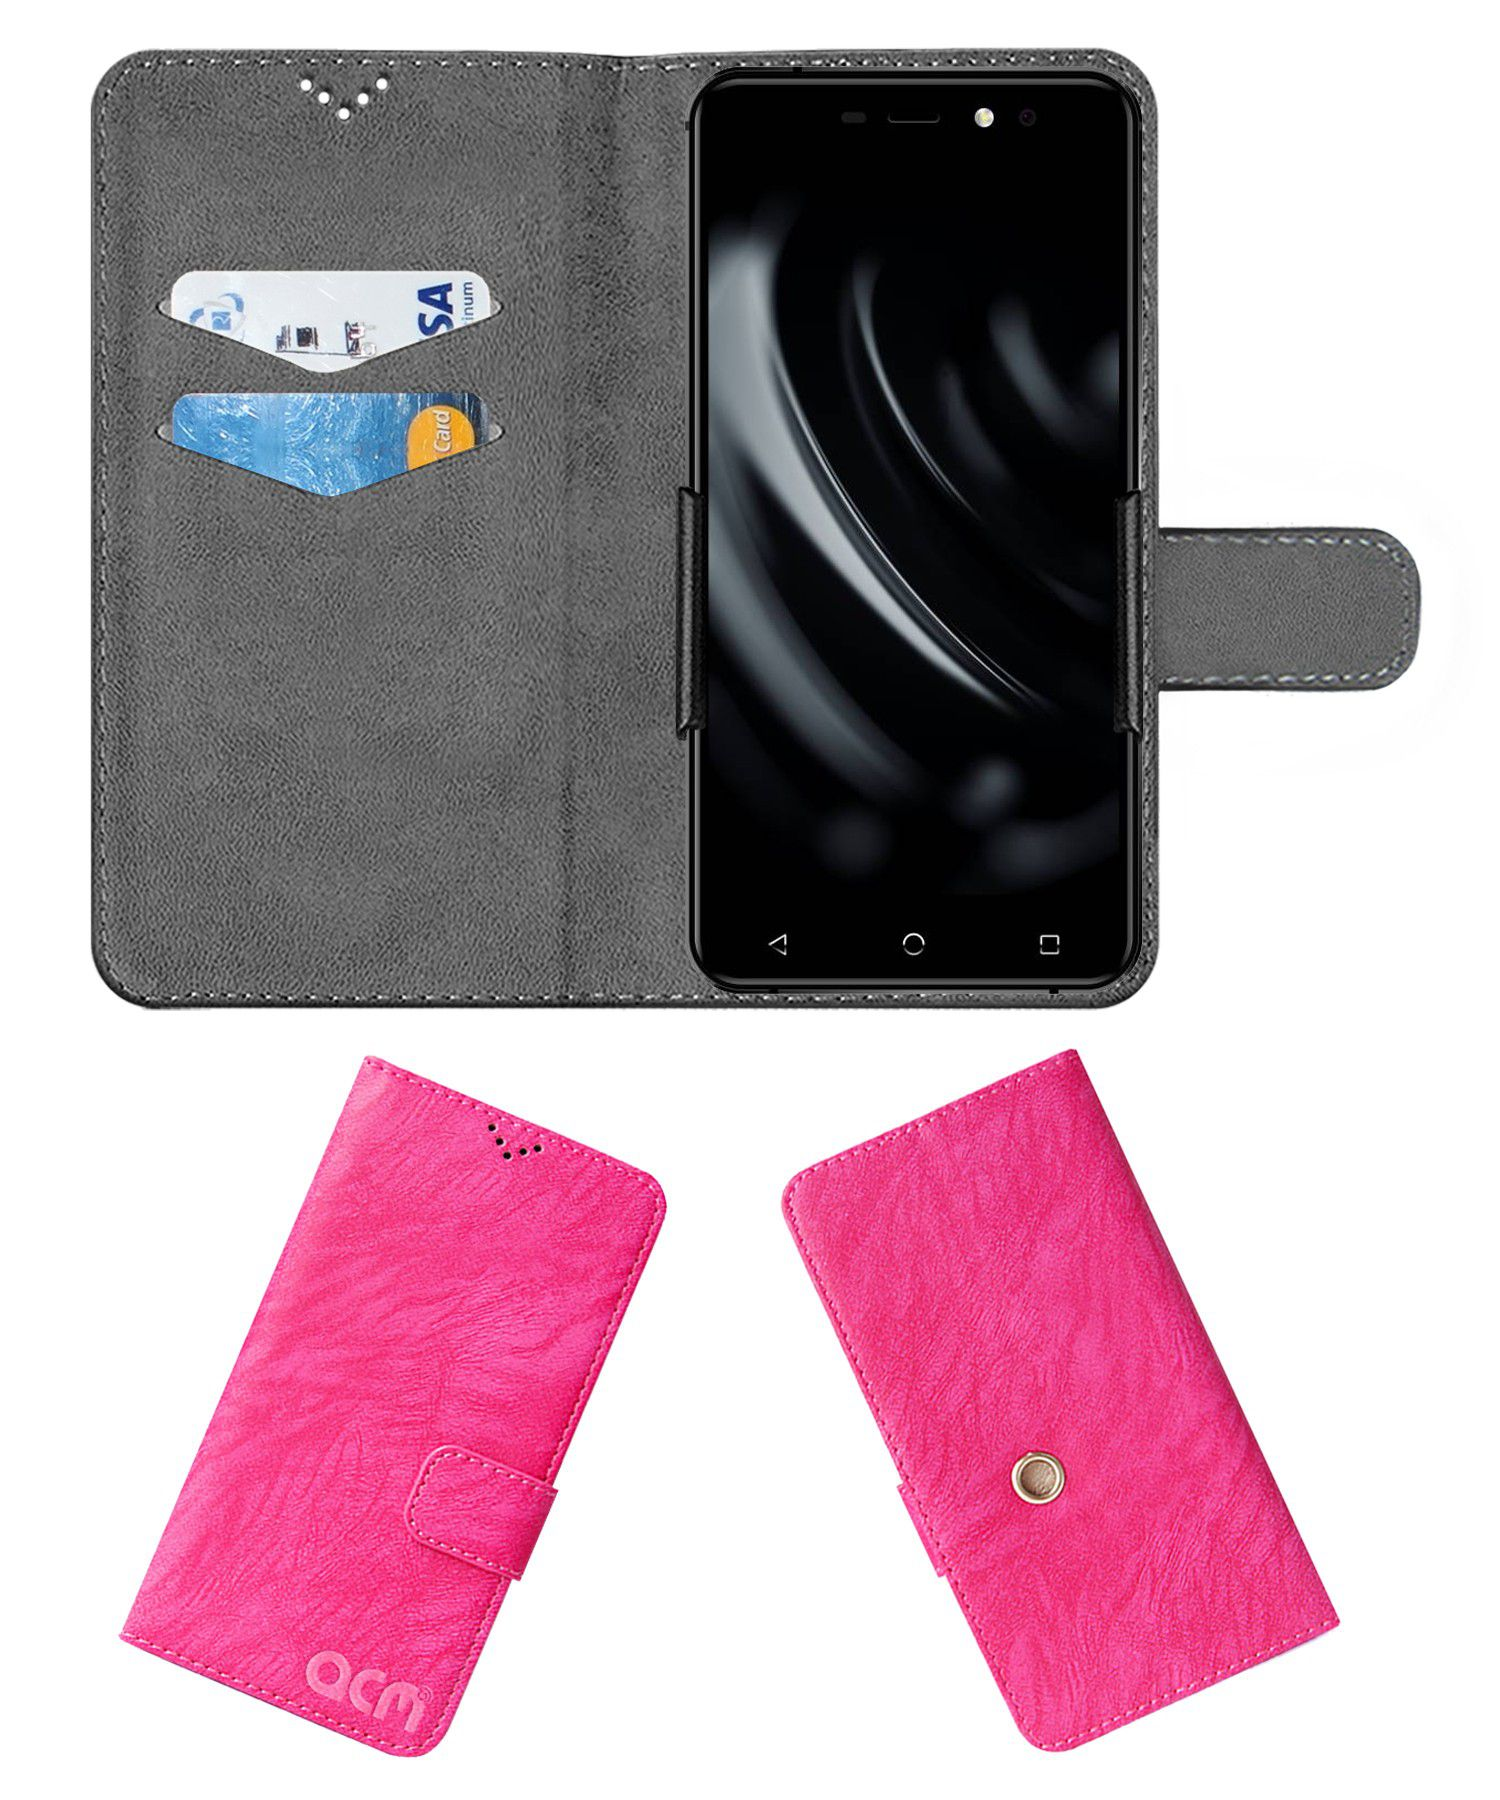 Yuho H2 Flip Cover by ACM - Pink Clip holder to hold your mobile securely